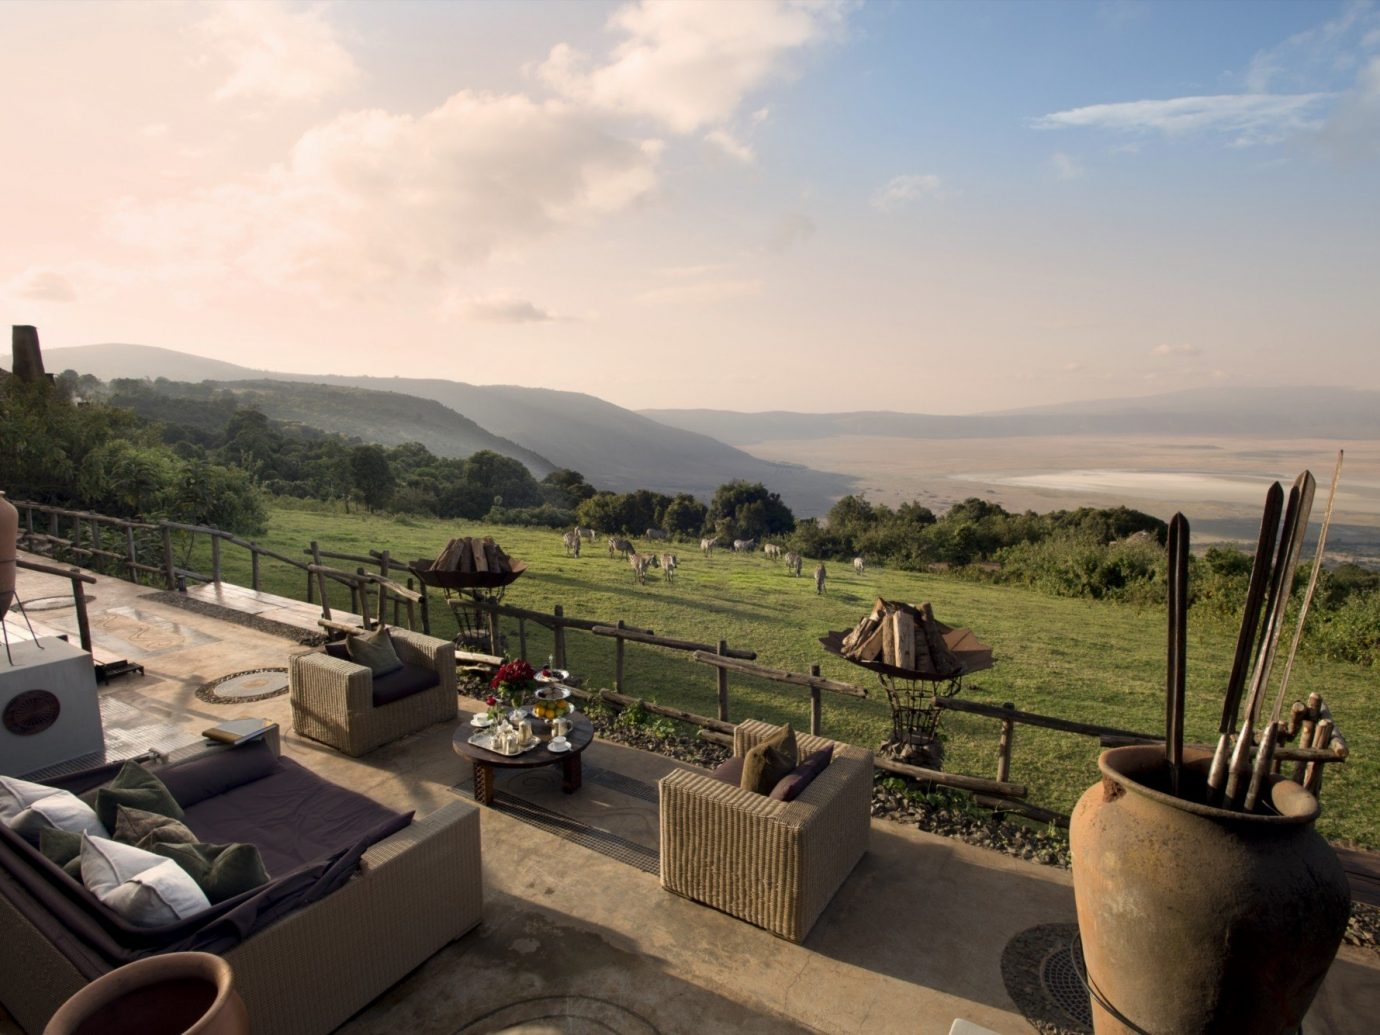 View from andBeyond Ngorongoro Crater Lodge, Tanzania African Safari